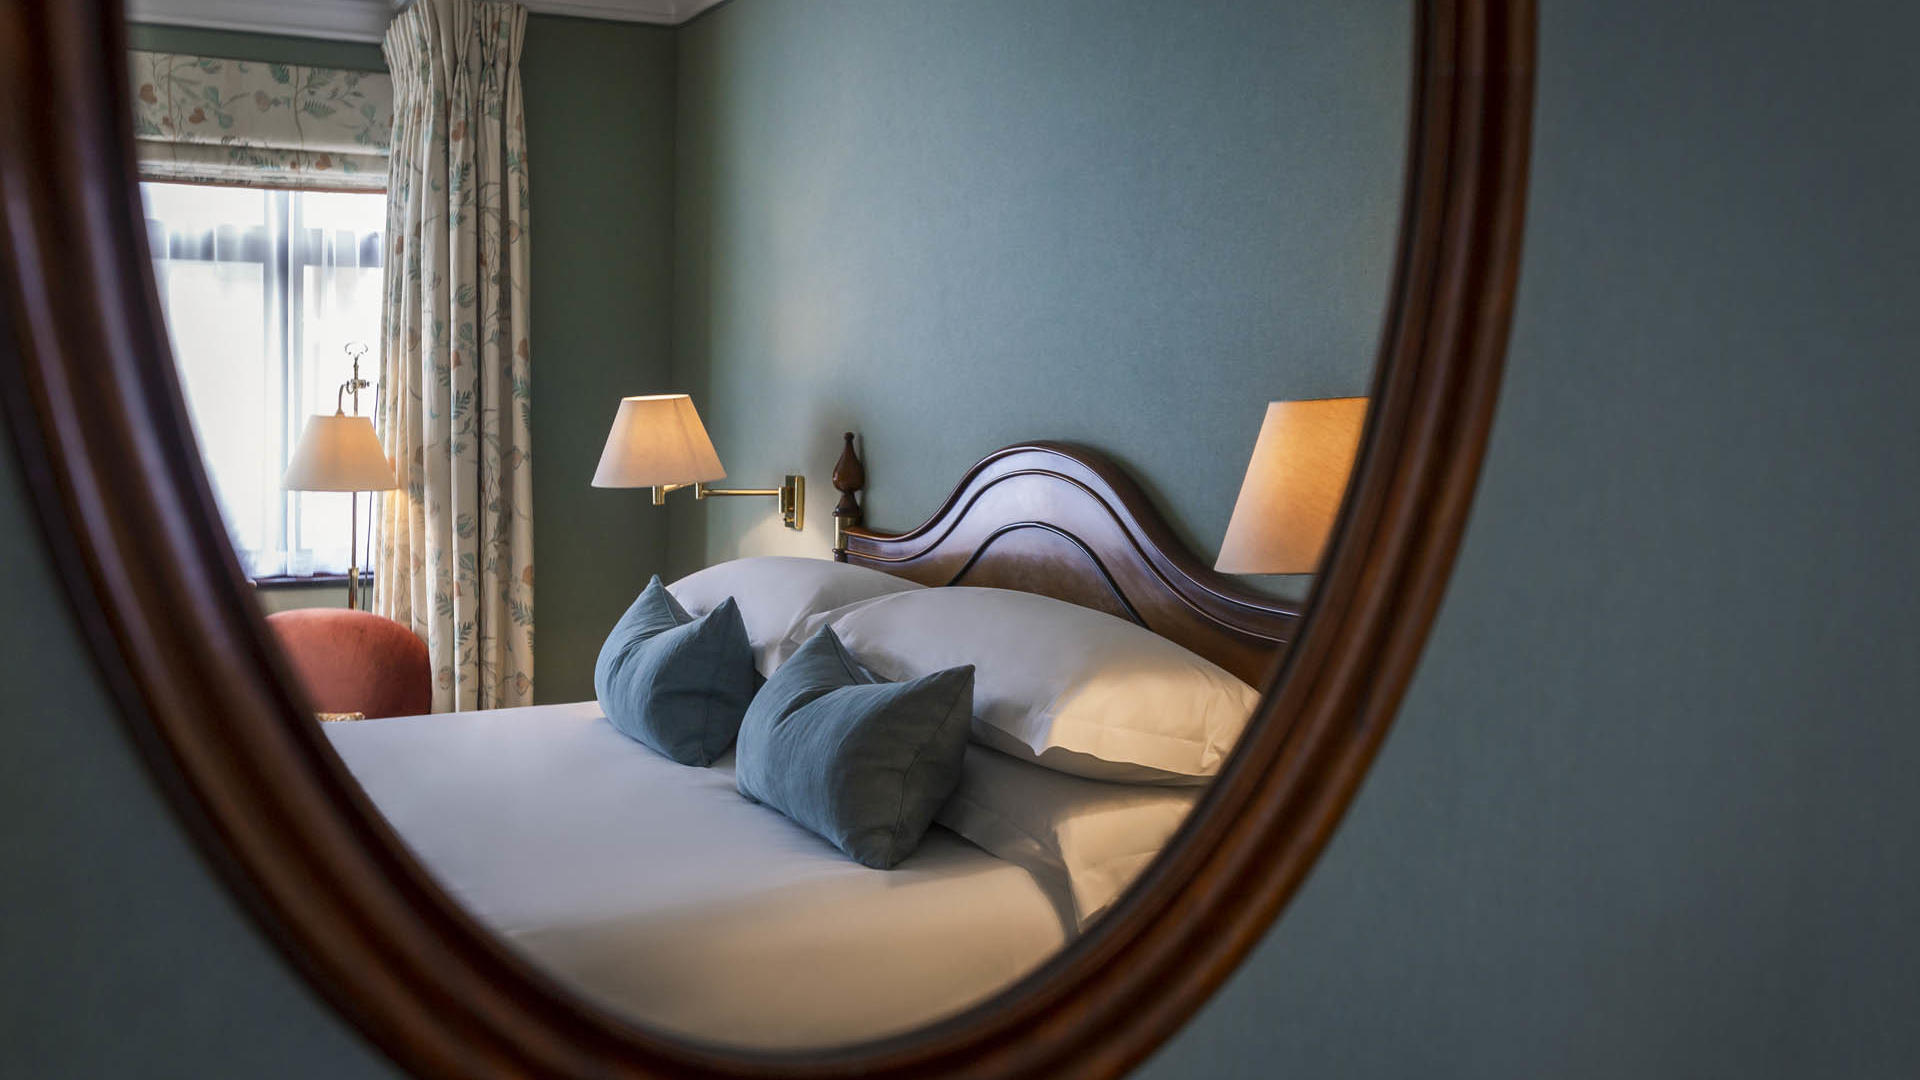 Superior King Room Bed View on a Mirror